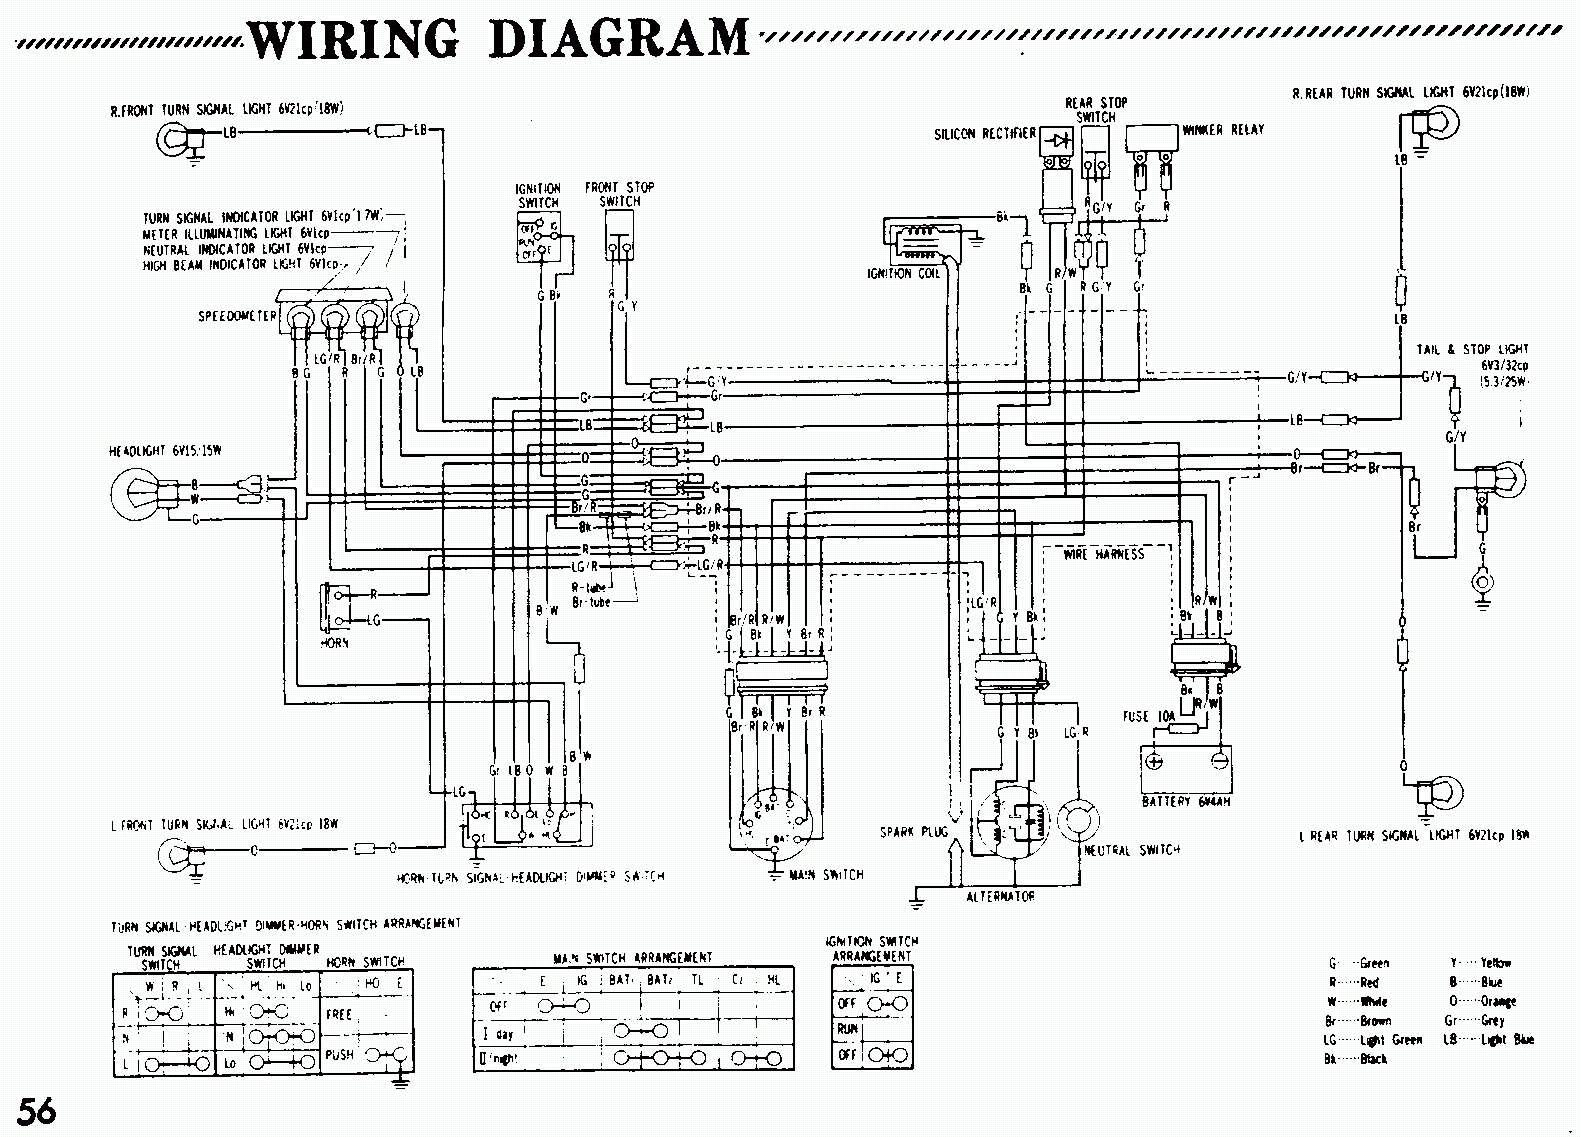 tbolt usa tech database tbolt usa llc rh tboltusa com 1982 honda ct70 wiring diagram 1976 honda ct70 wiring diagram